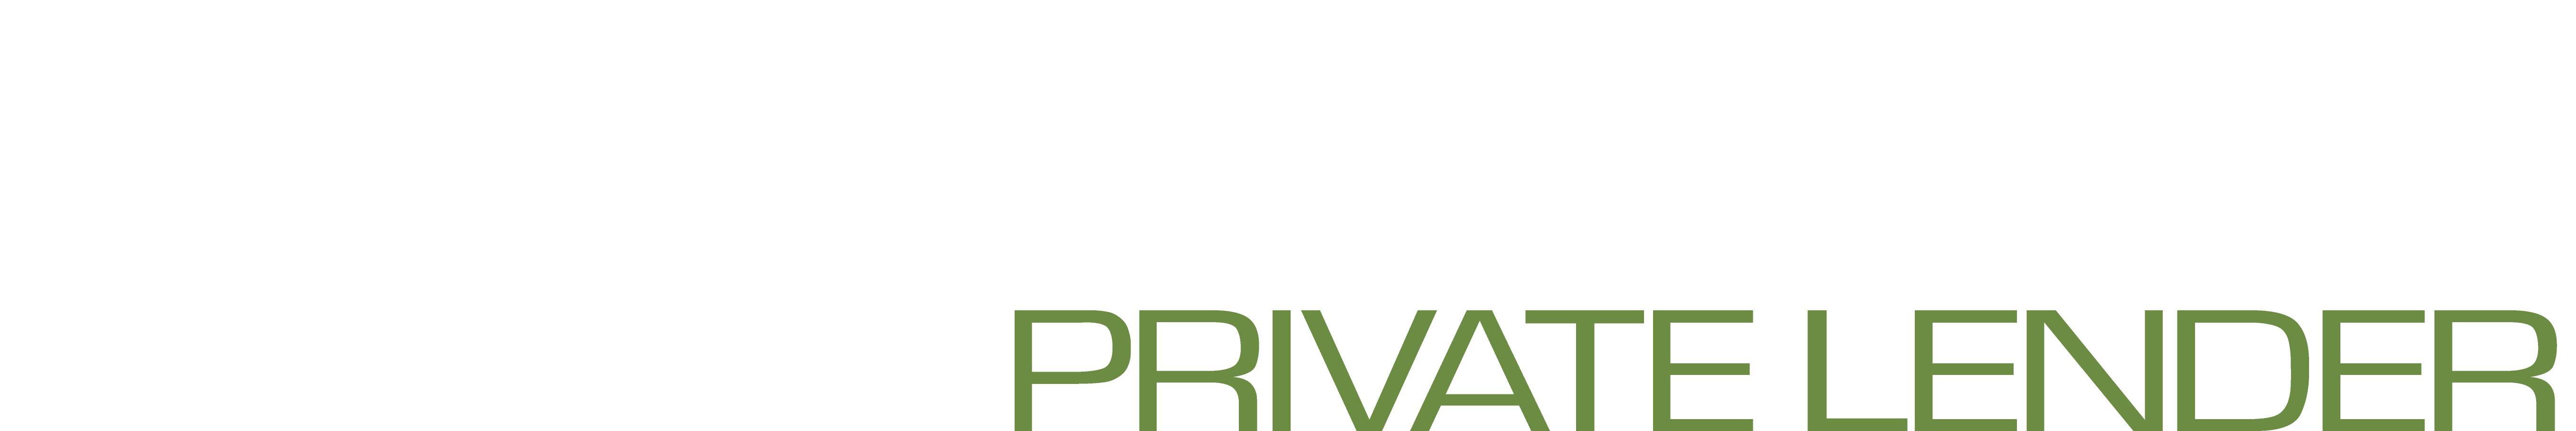 Norfolk Capital, Private Lender